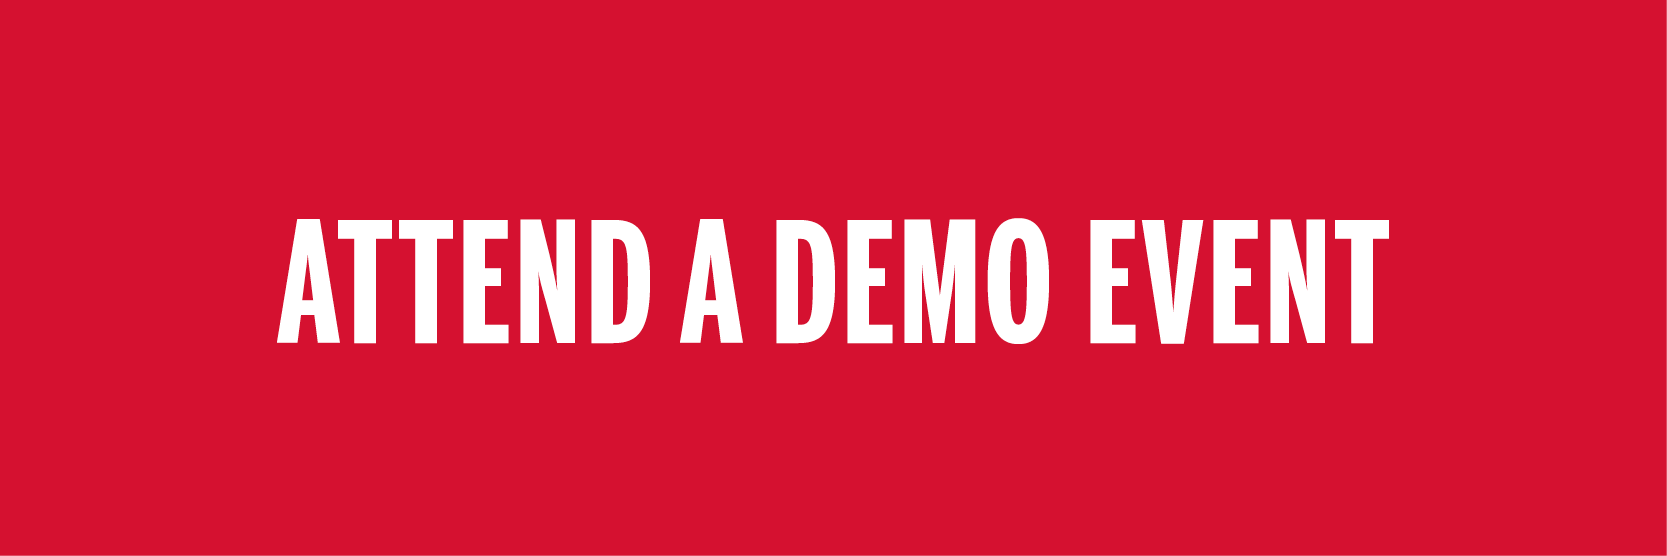 Attend a Demo Event